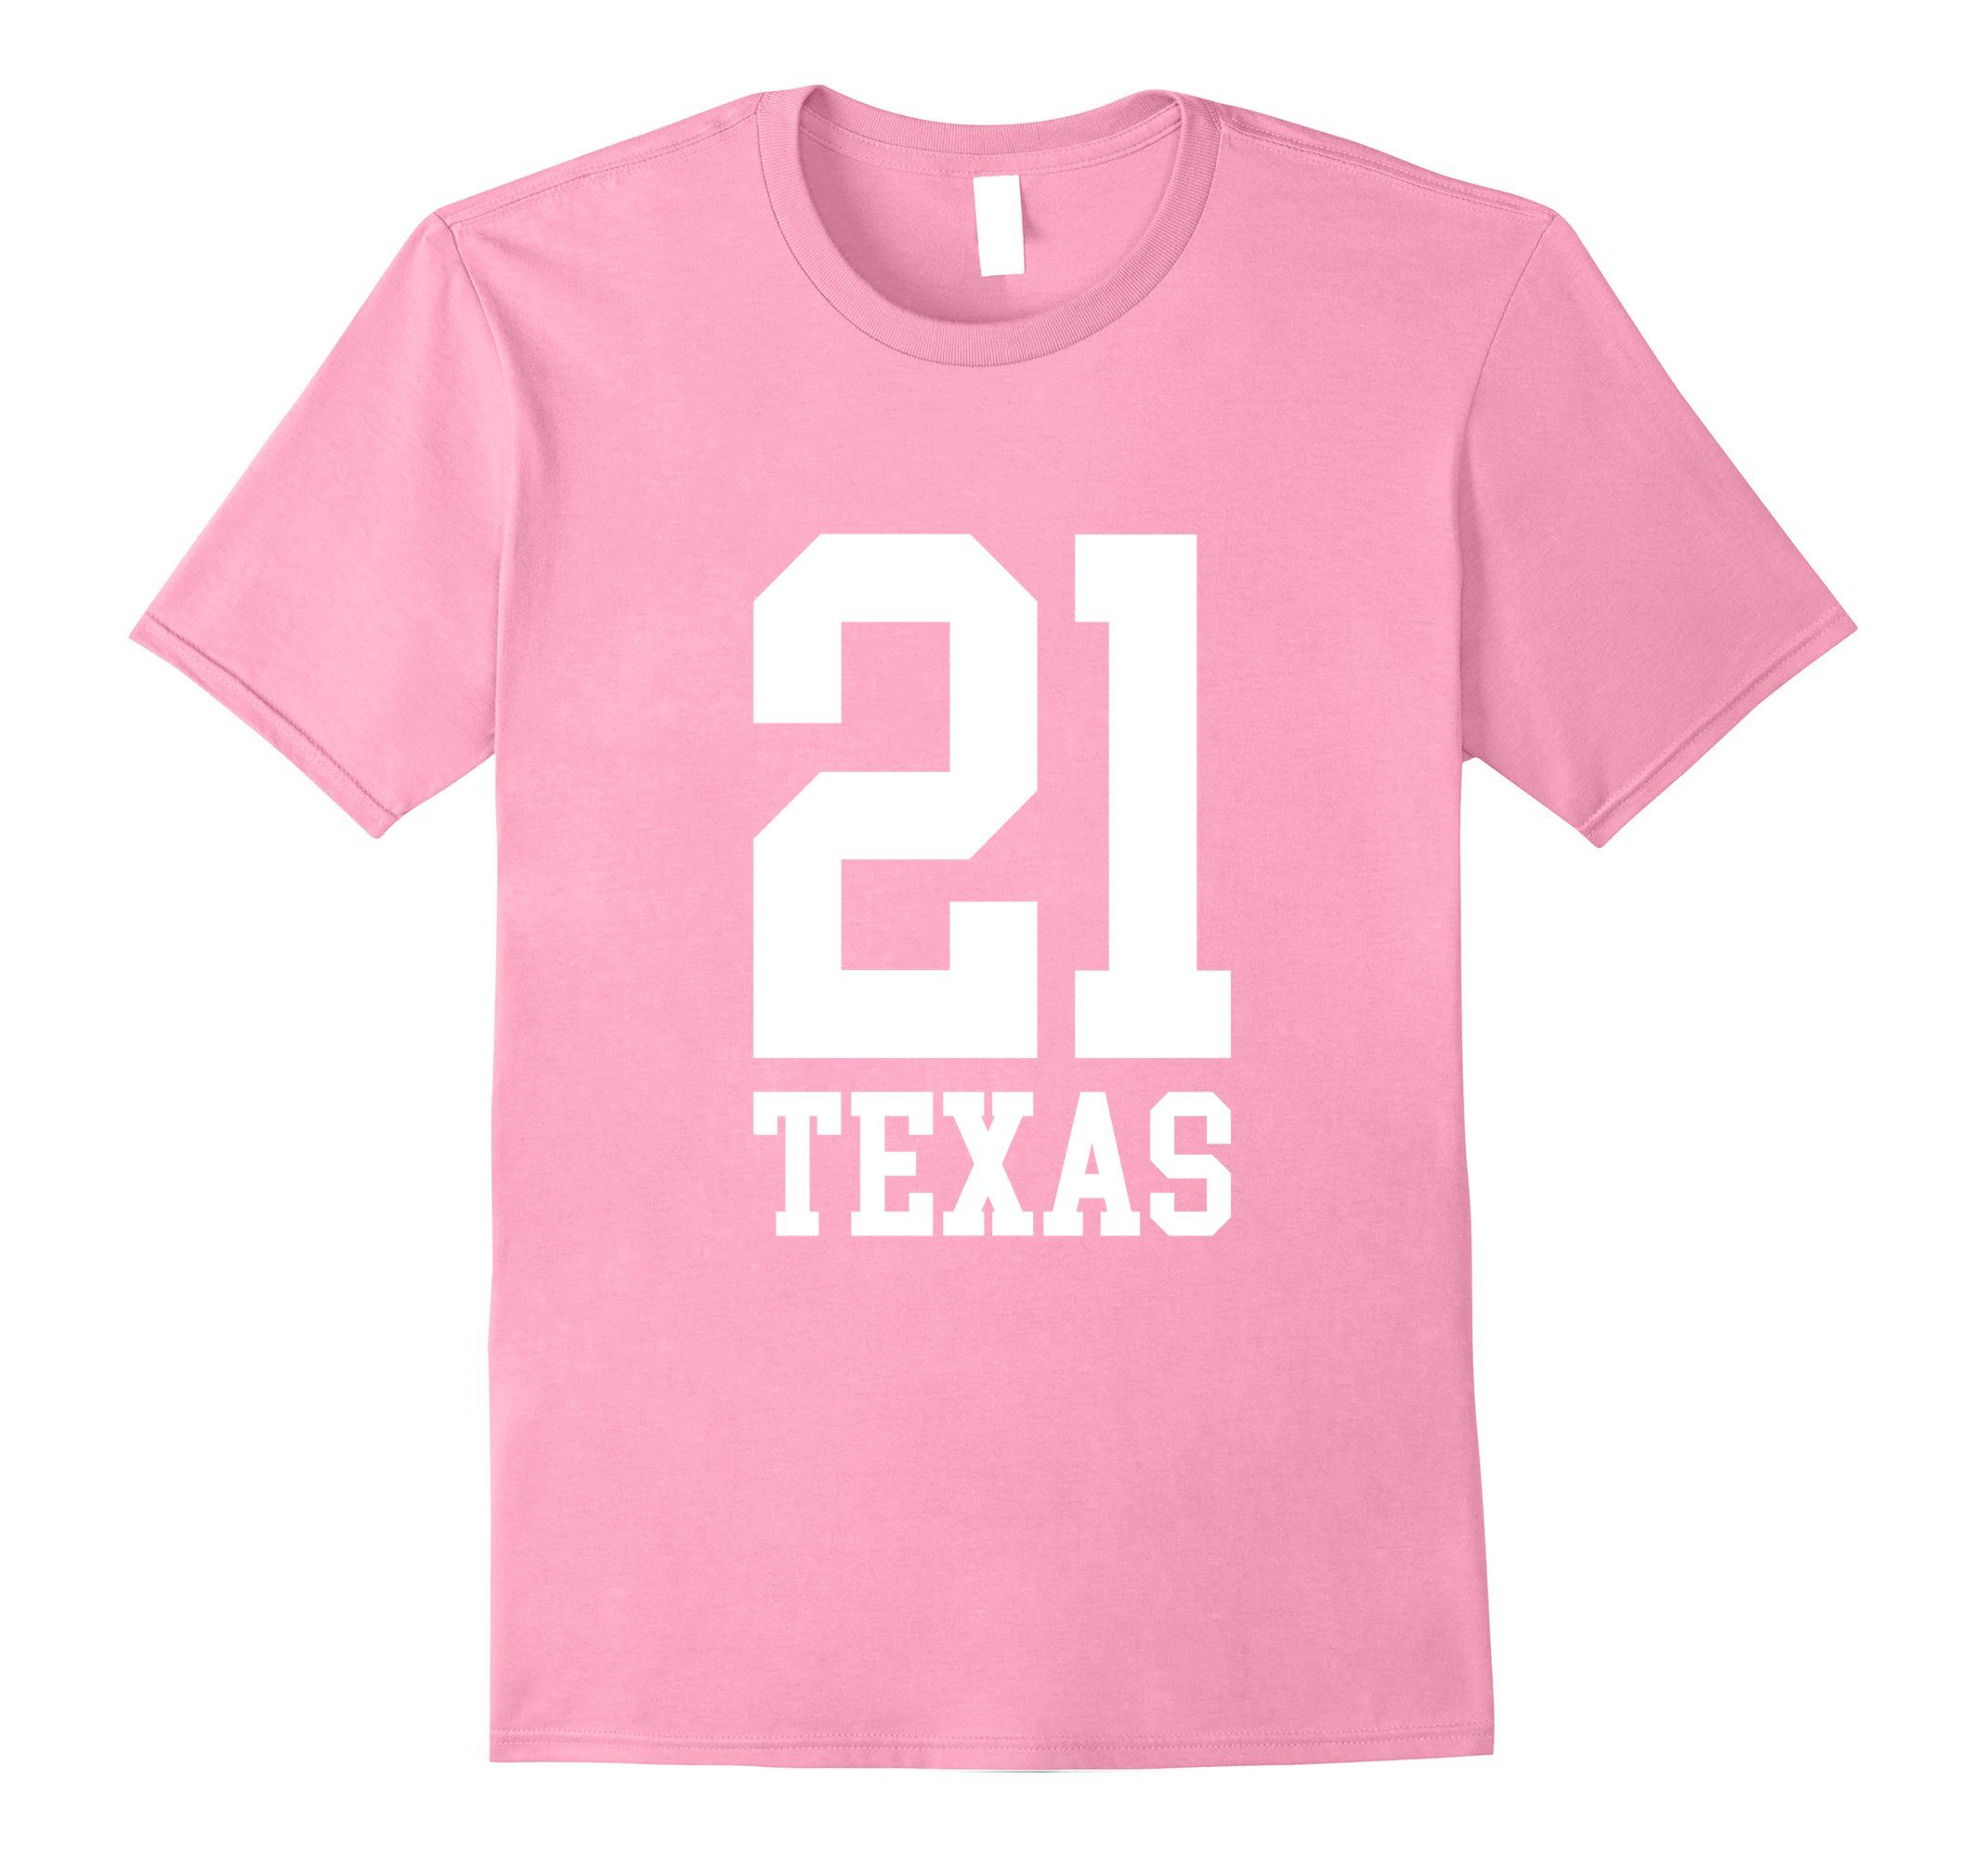 Amazon 21 TEXAS 21st Birthday Gift T Shirt Clothing